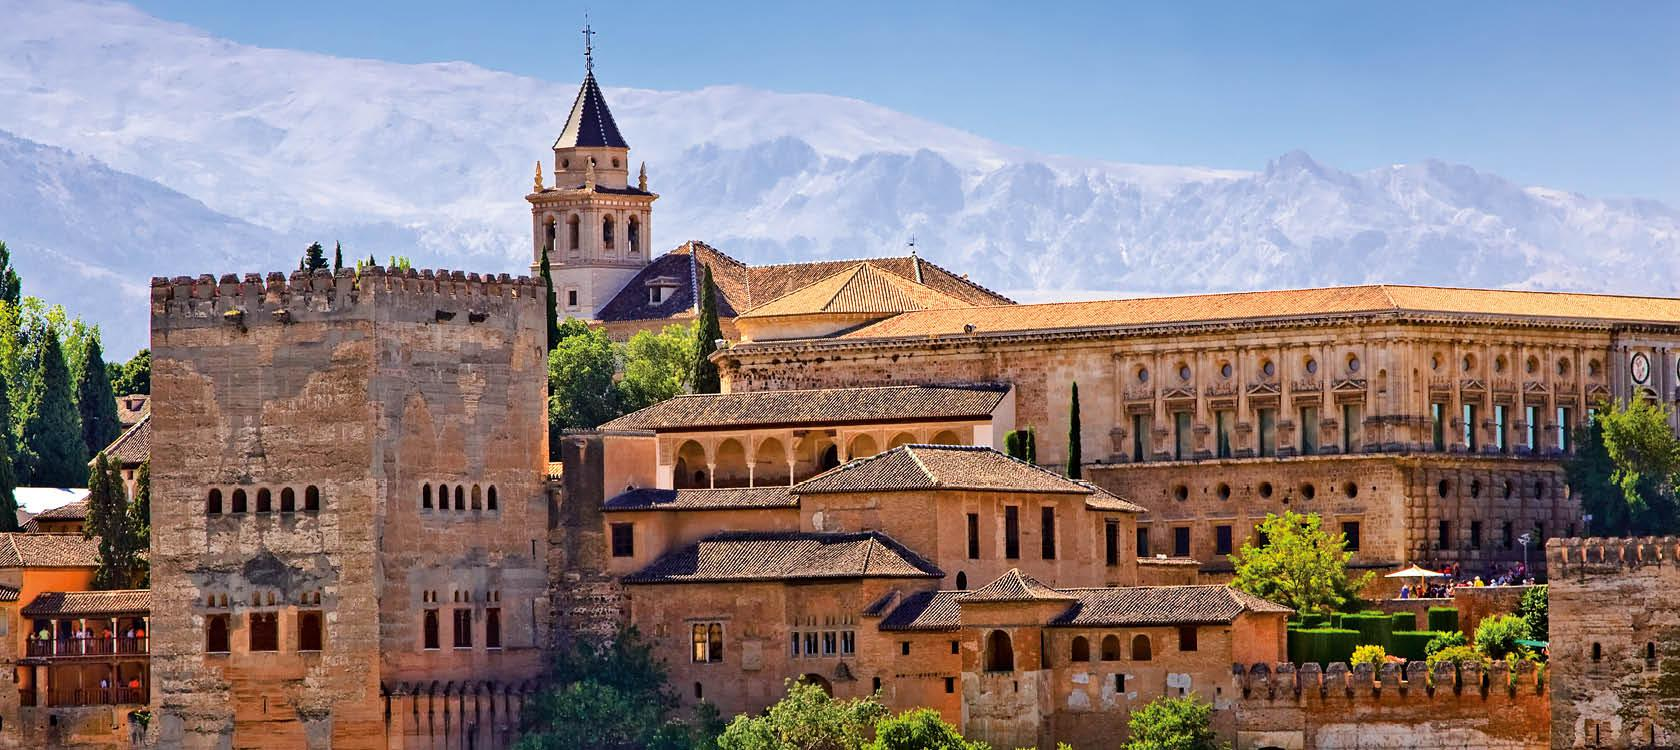 Alhambra i Andalusien, Spanien